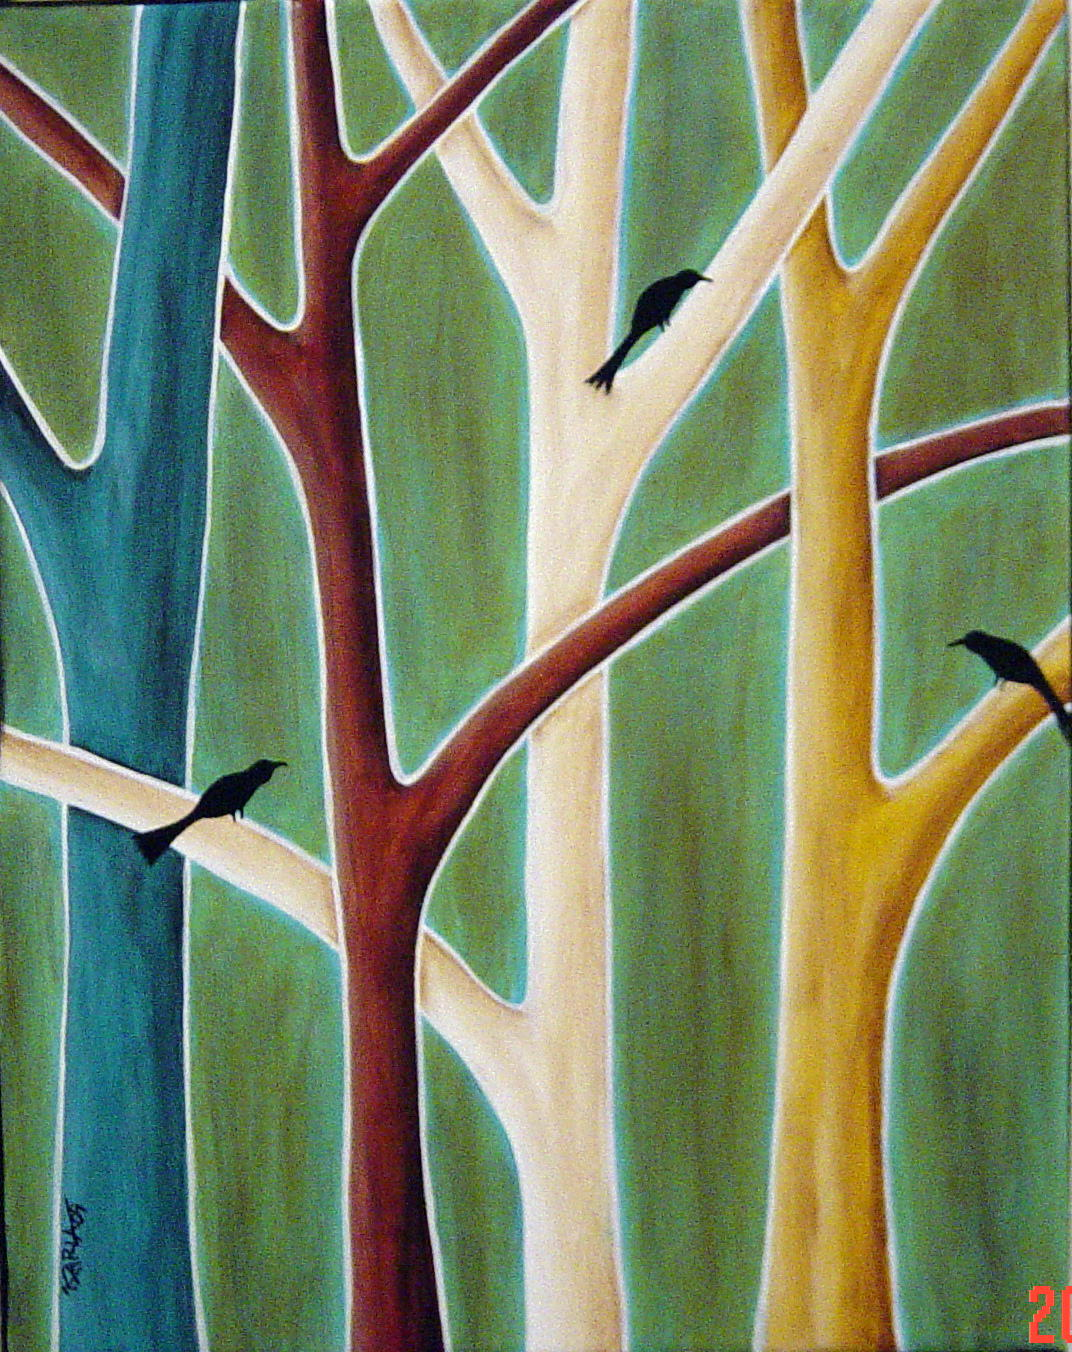 karla gerard art: Trees and Birds Painting by Karla G